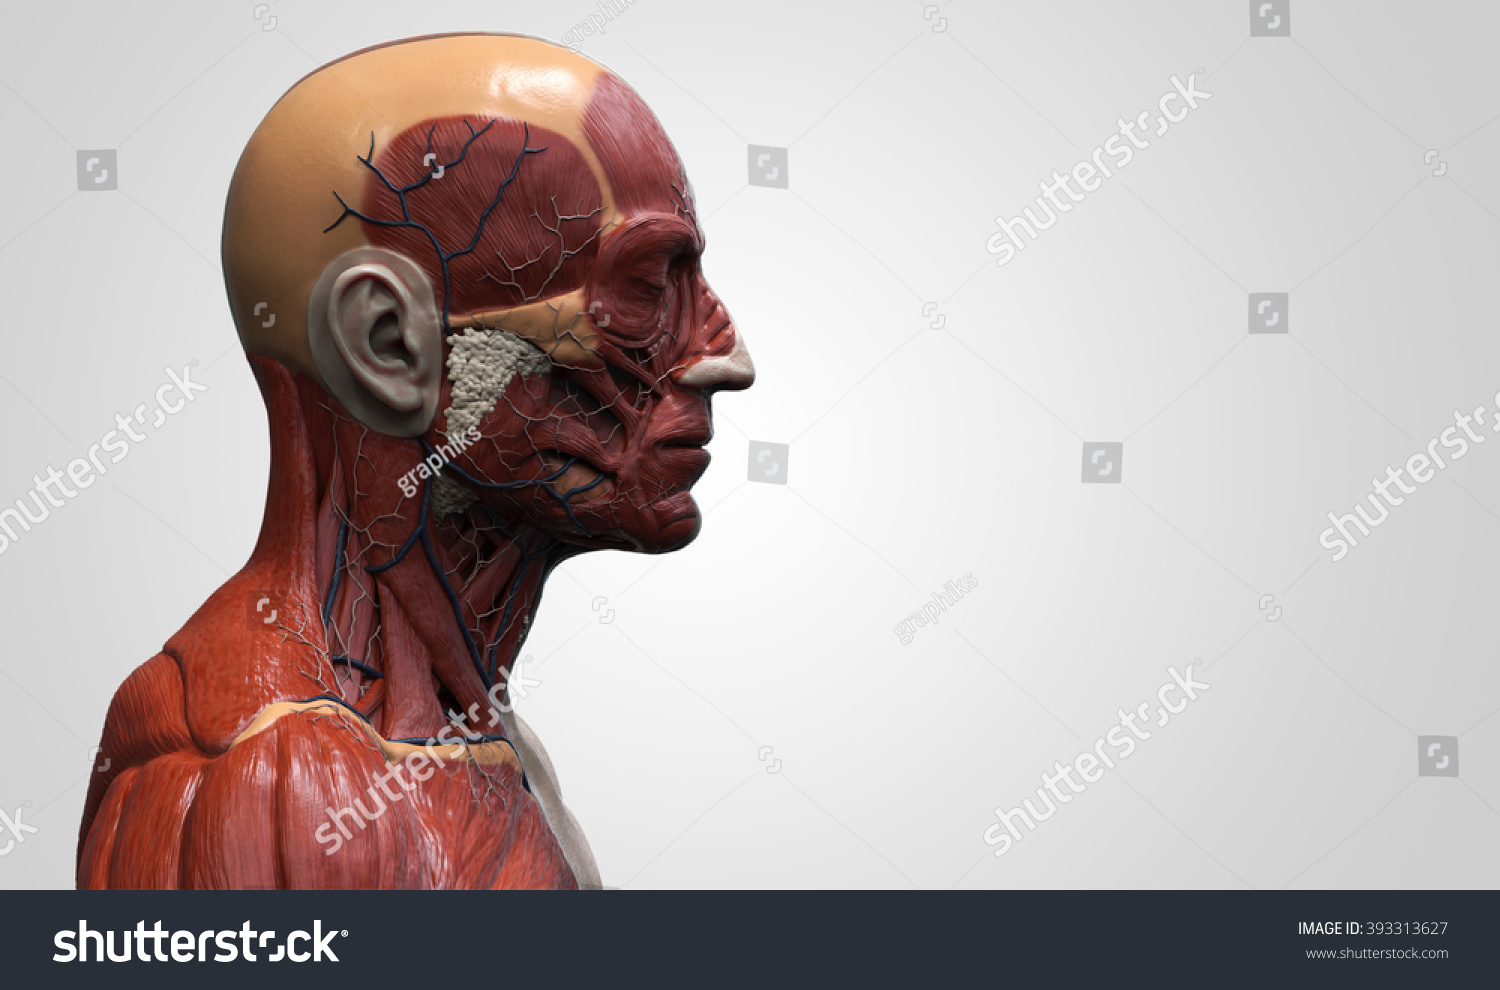 Head Torso Anatomy Human Head Shoulder Stockillustration 393313627